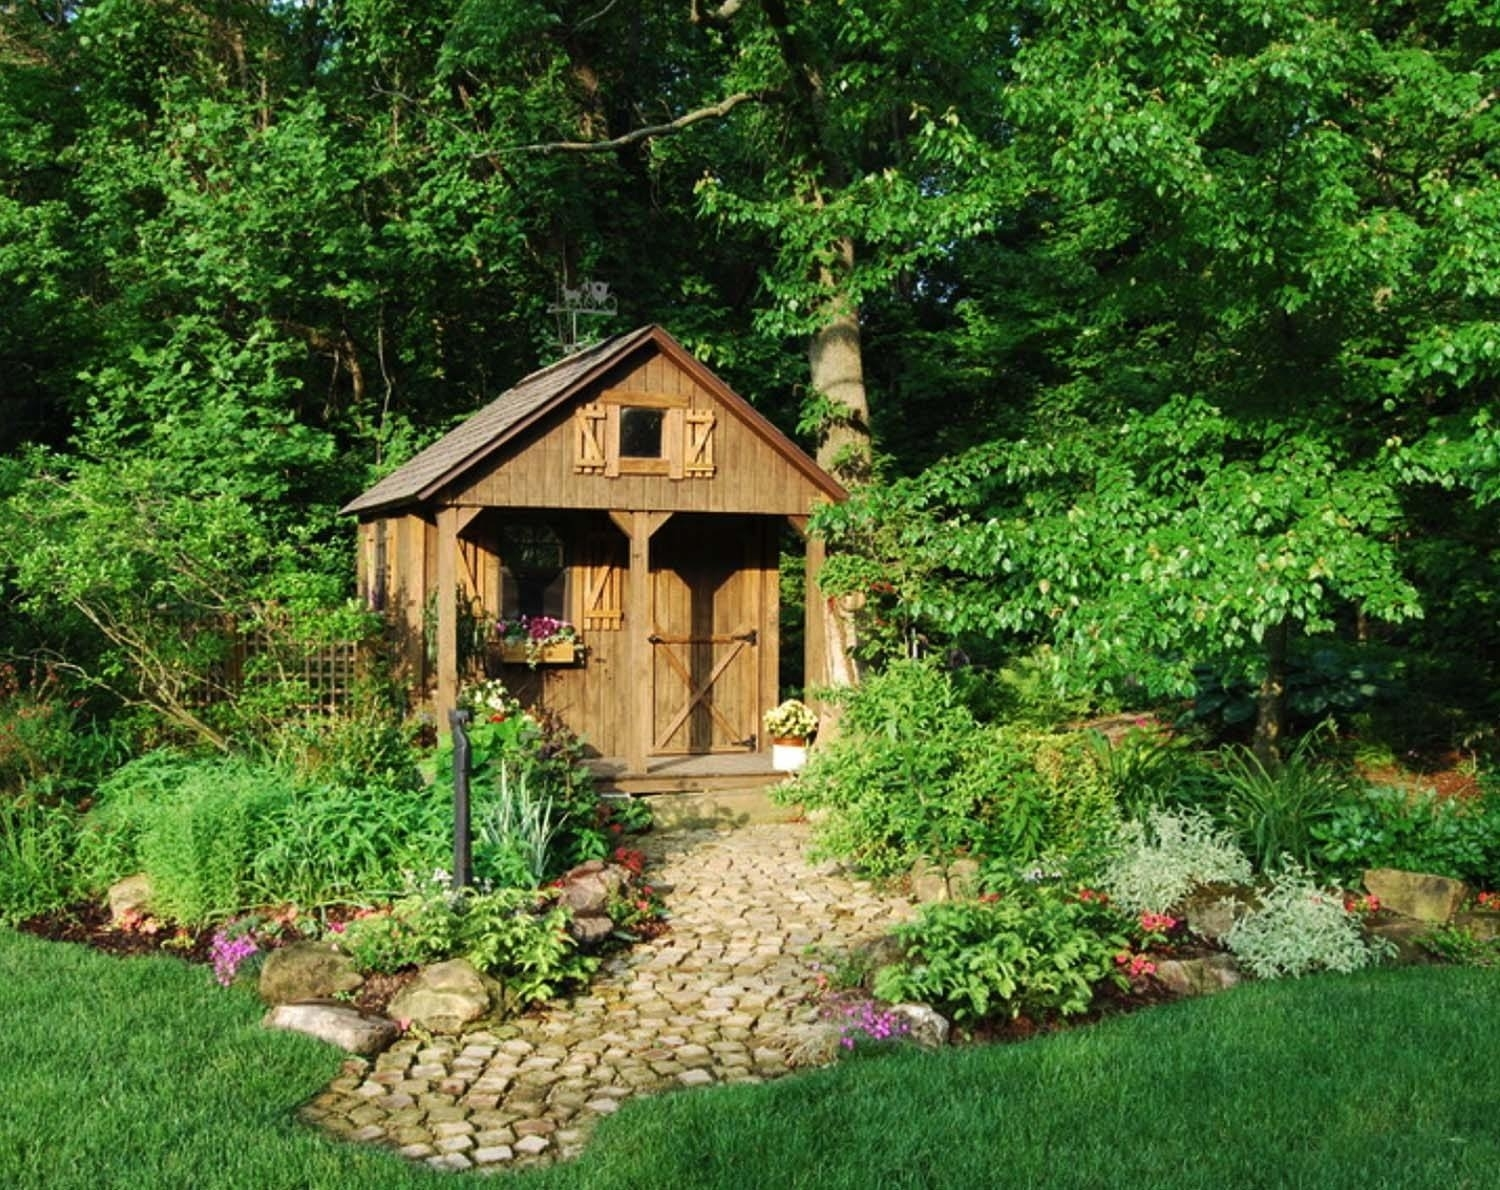 Double Backyard How To Build Cheap Workshop Garden Building Design for Backyard Garden With Shed